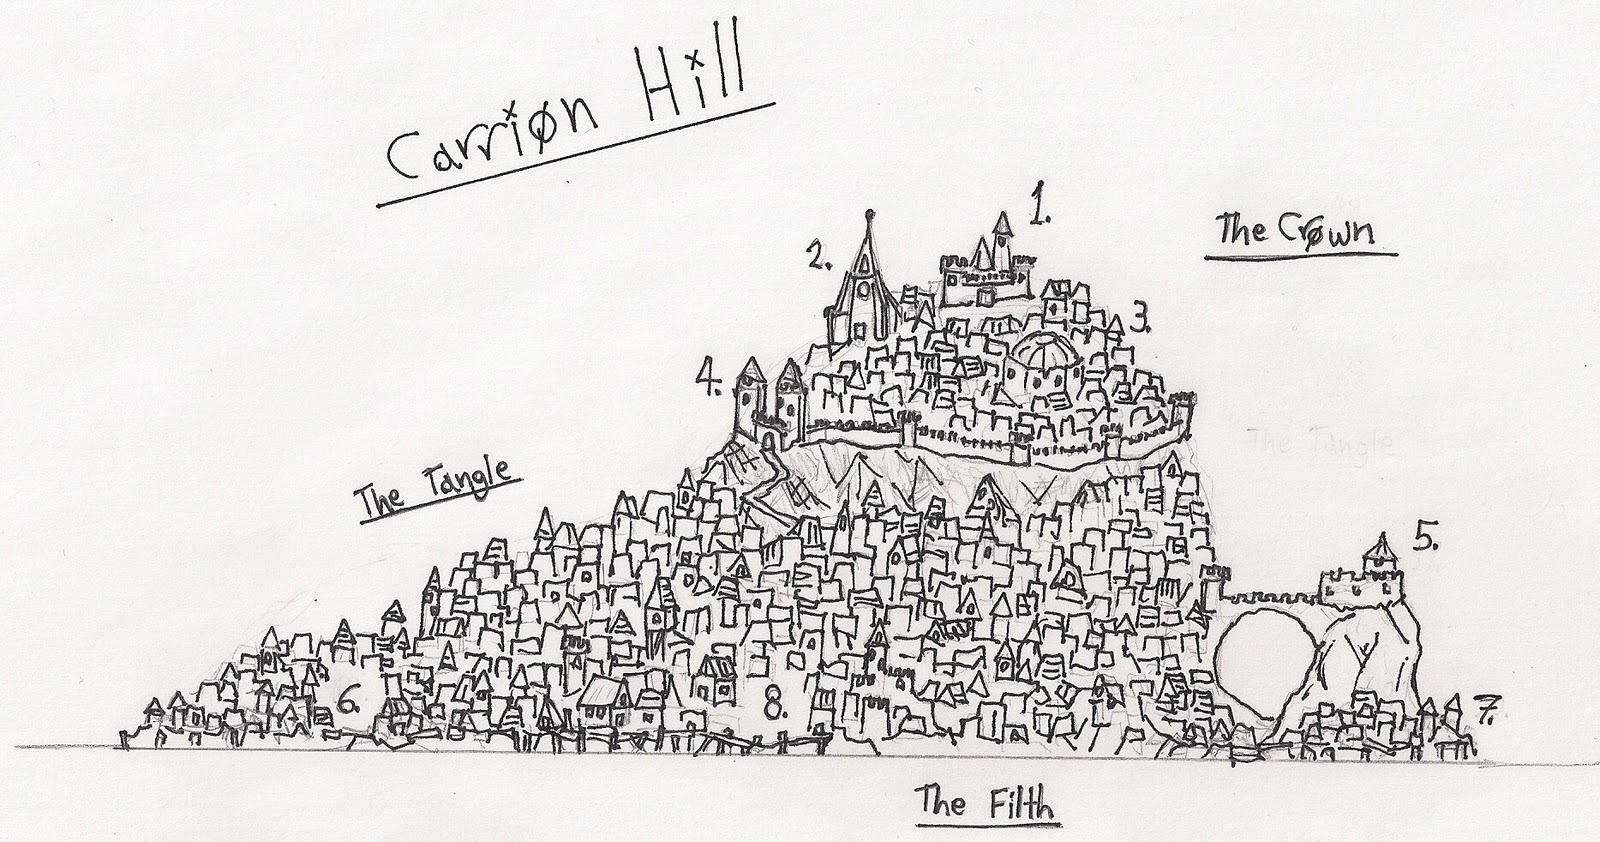 CARRION HILL PDF DOWNLOAD